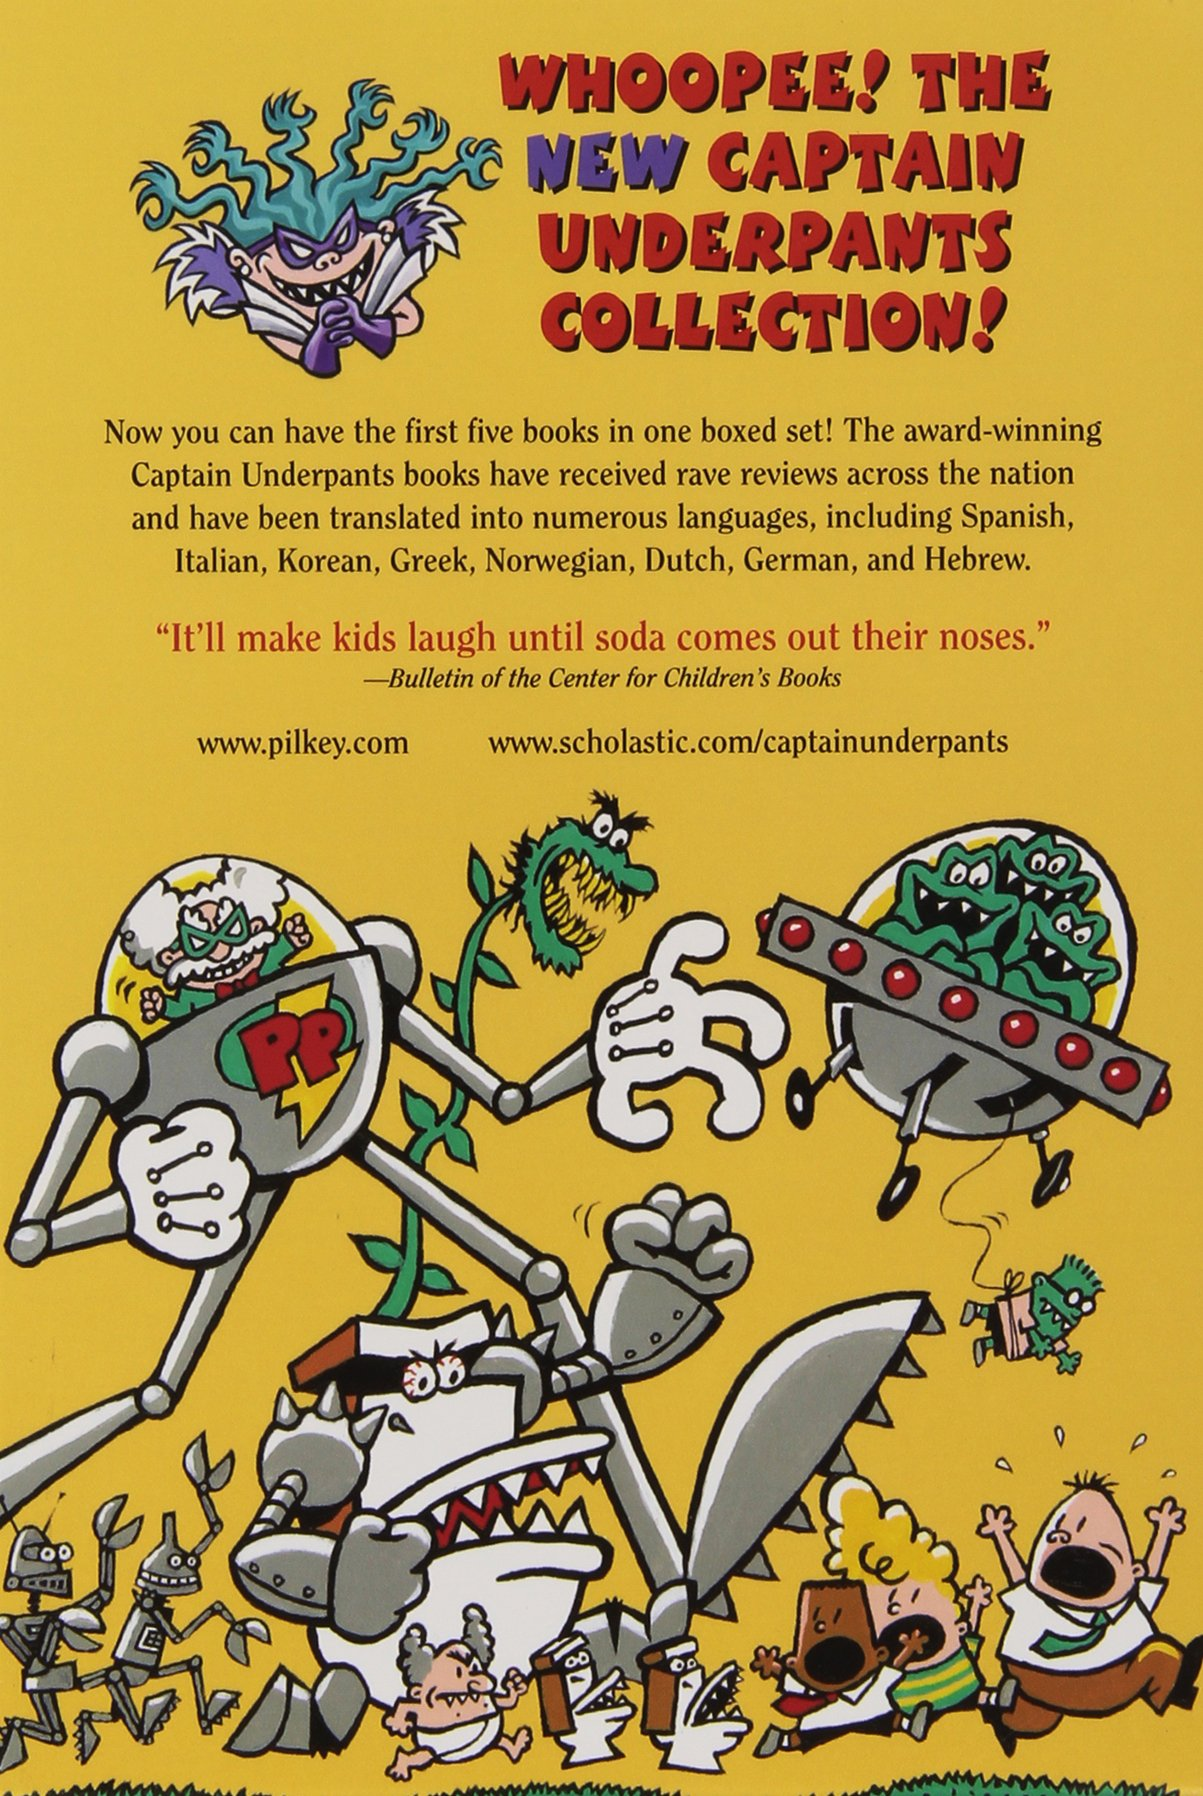 The New Captain Underpants Collection (Books 1-5) by The Blue Sky Press (Image #9)